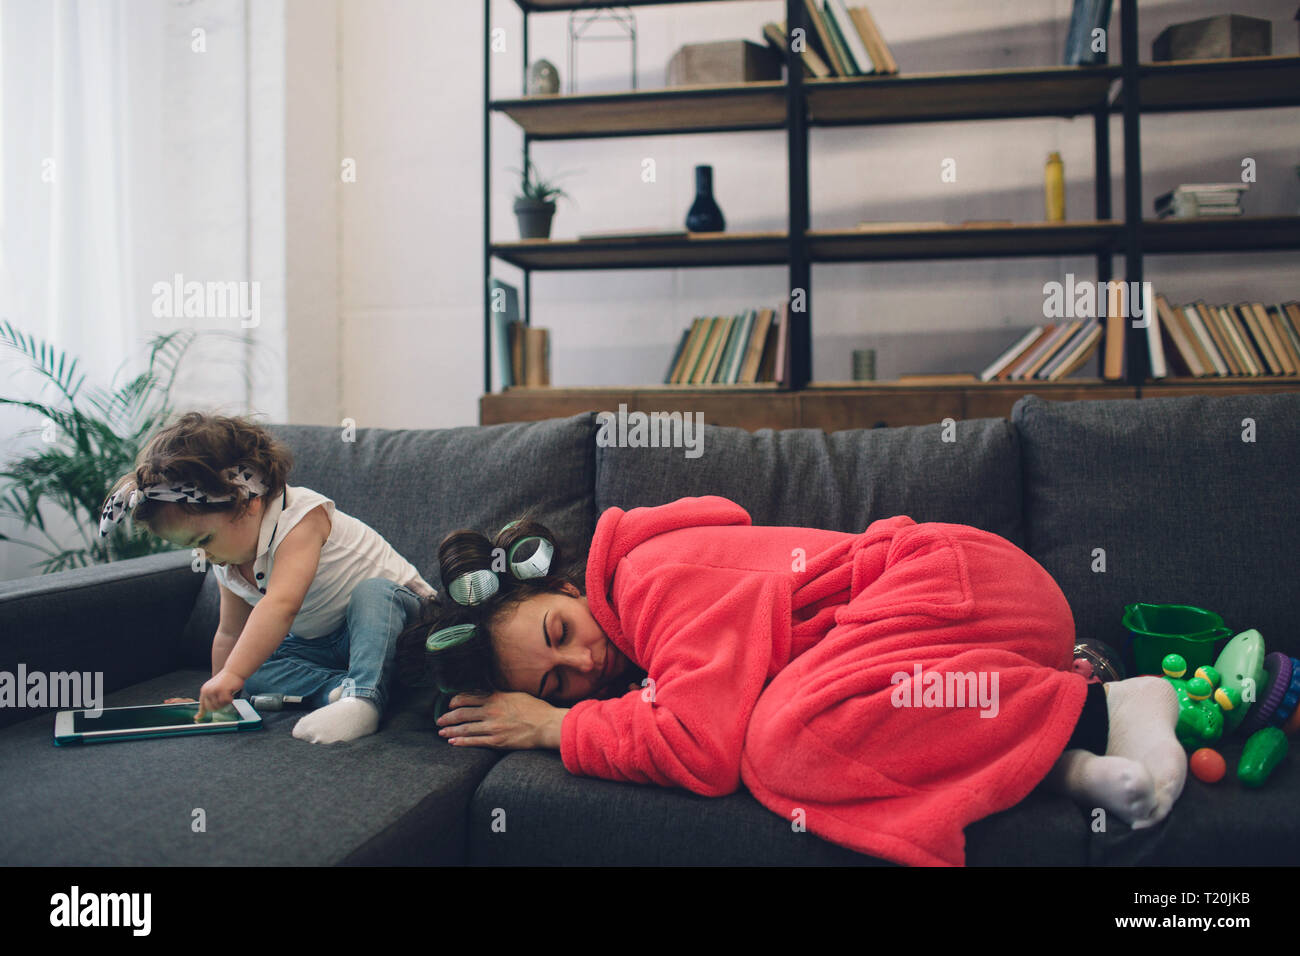 Young mother old is experiencing postnatal depression. Sad and tired woman with PPD. She does not want to play with her daughter. - Stock Image